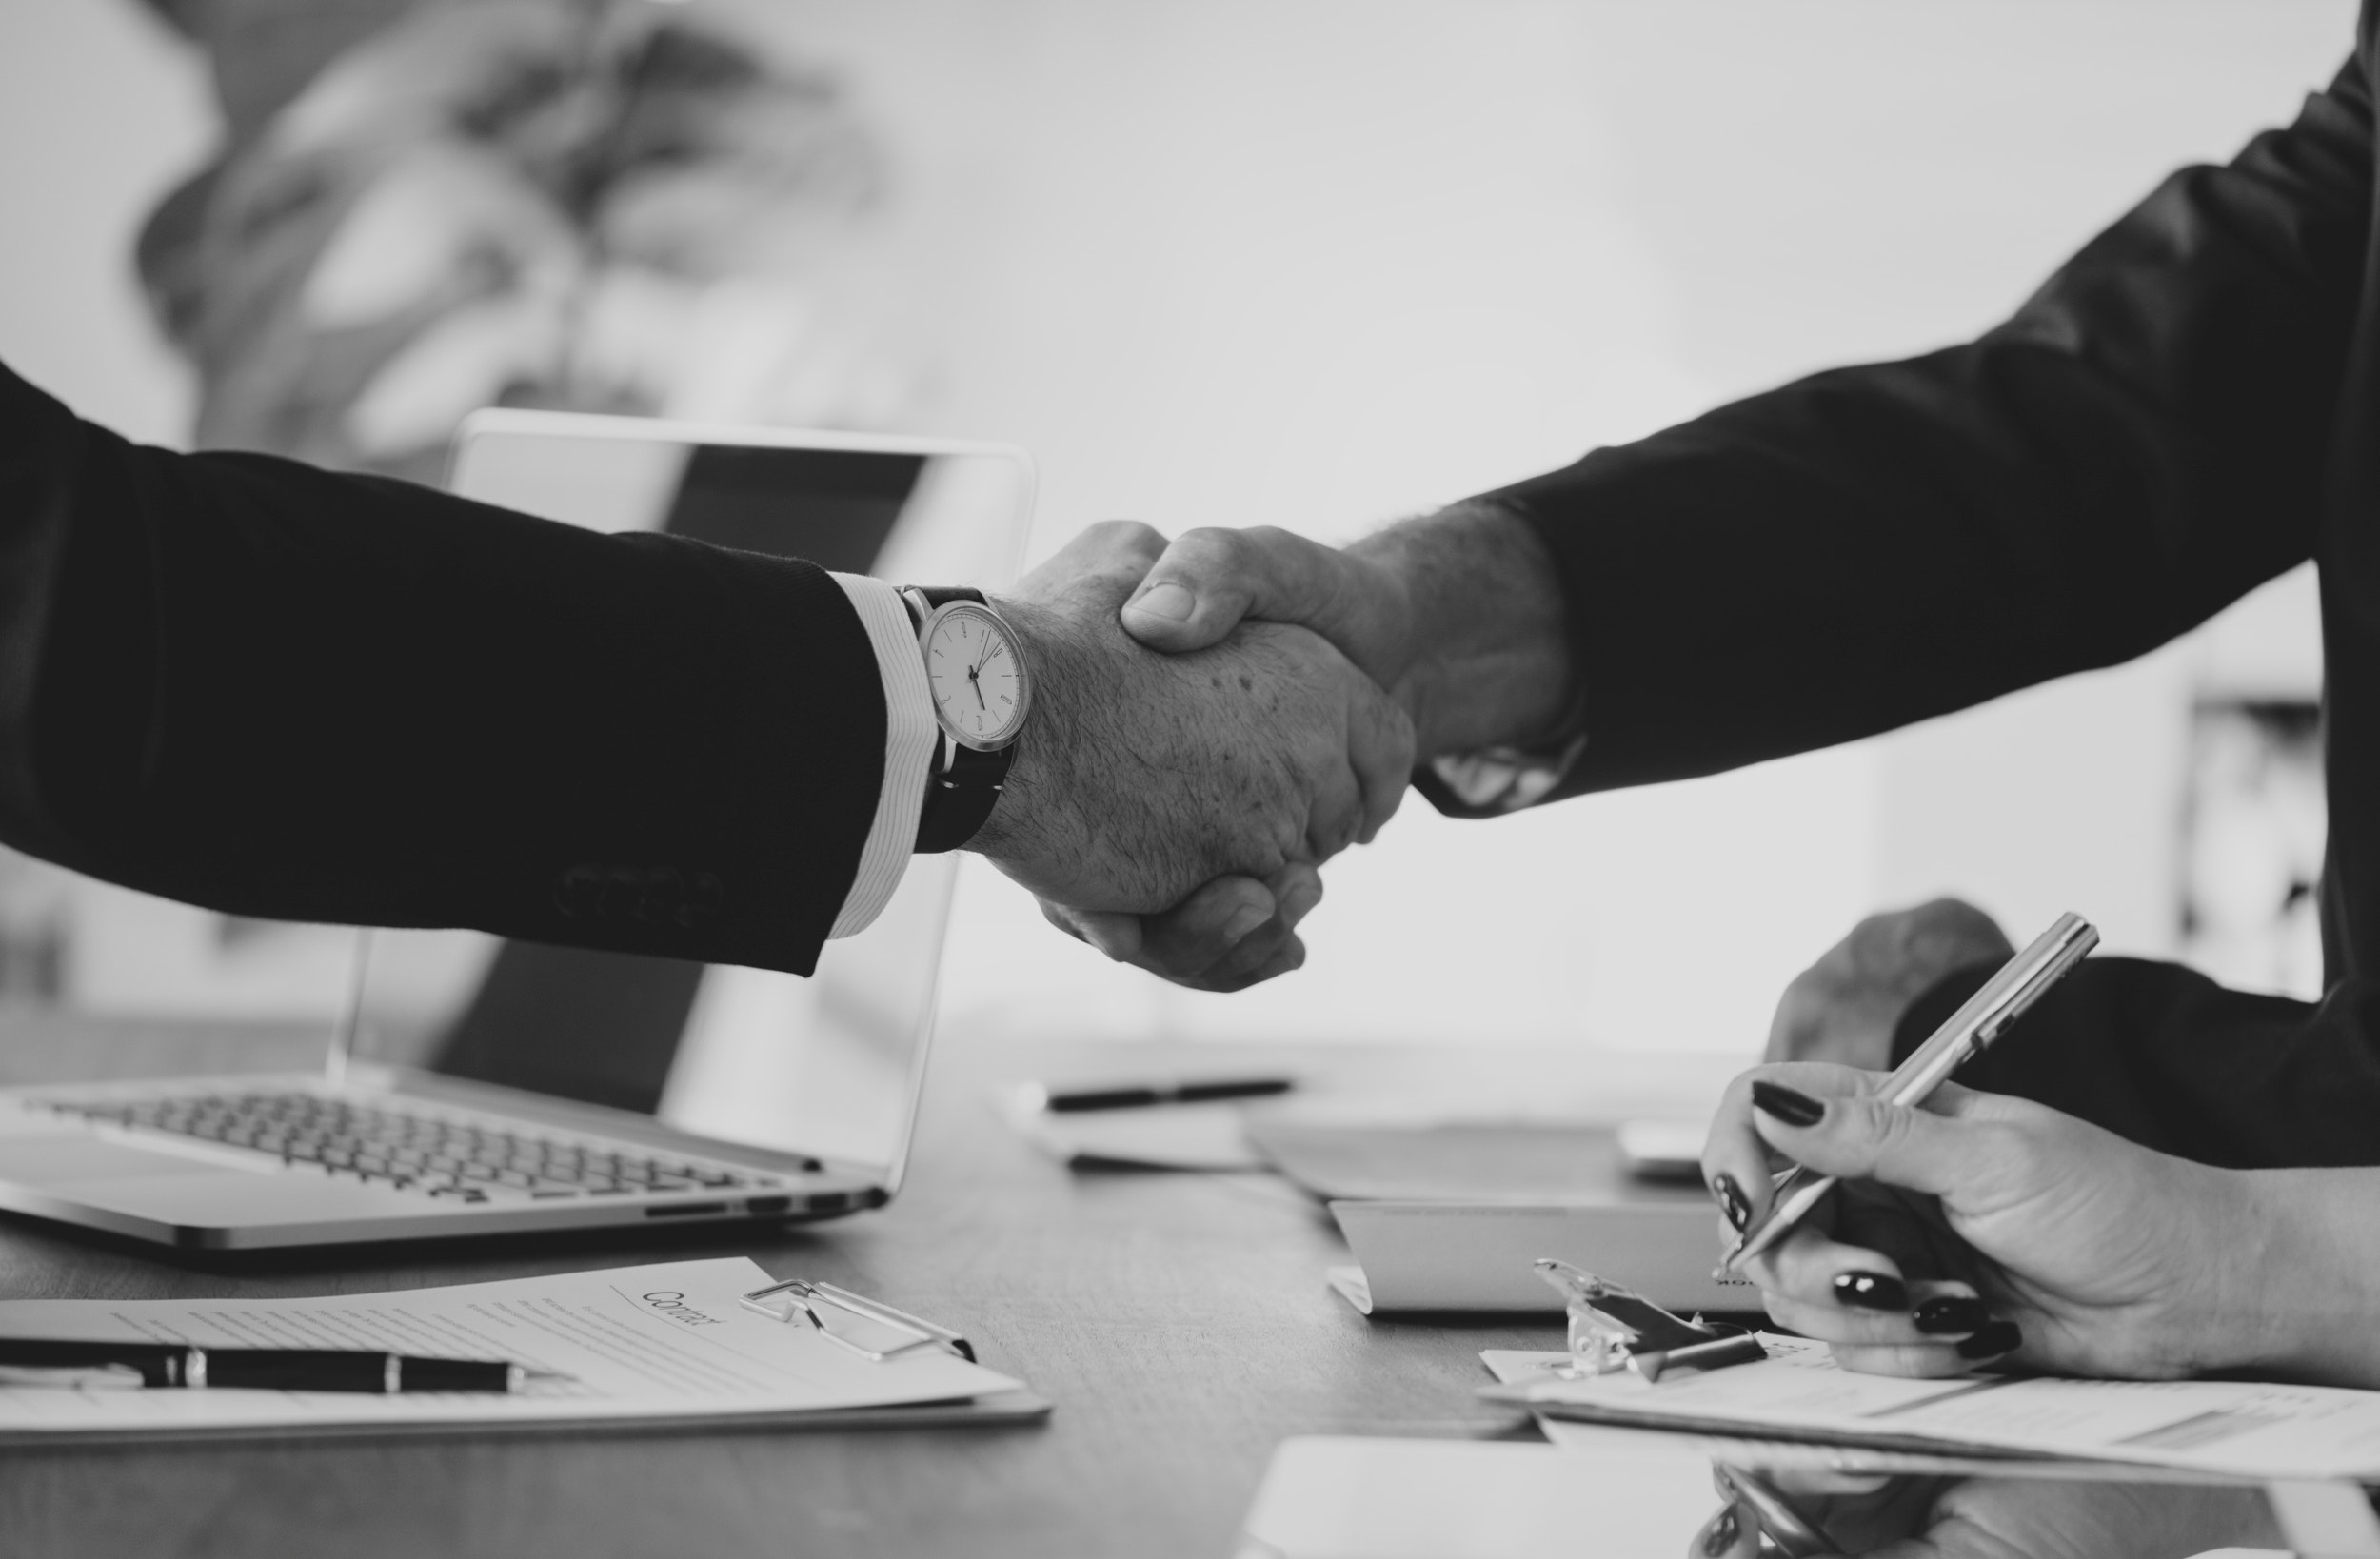 achievement-agreement-black-and-white-997718